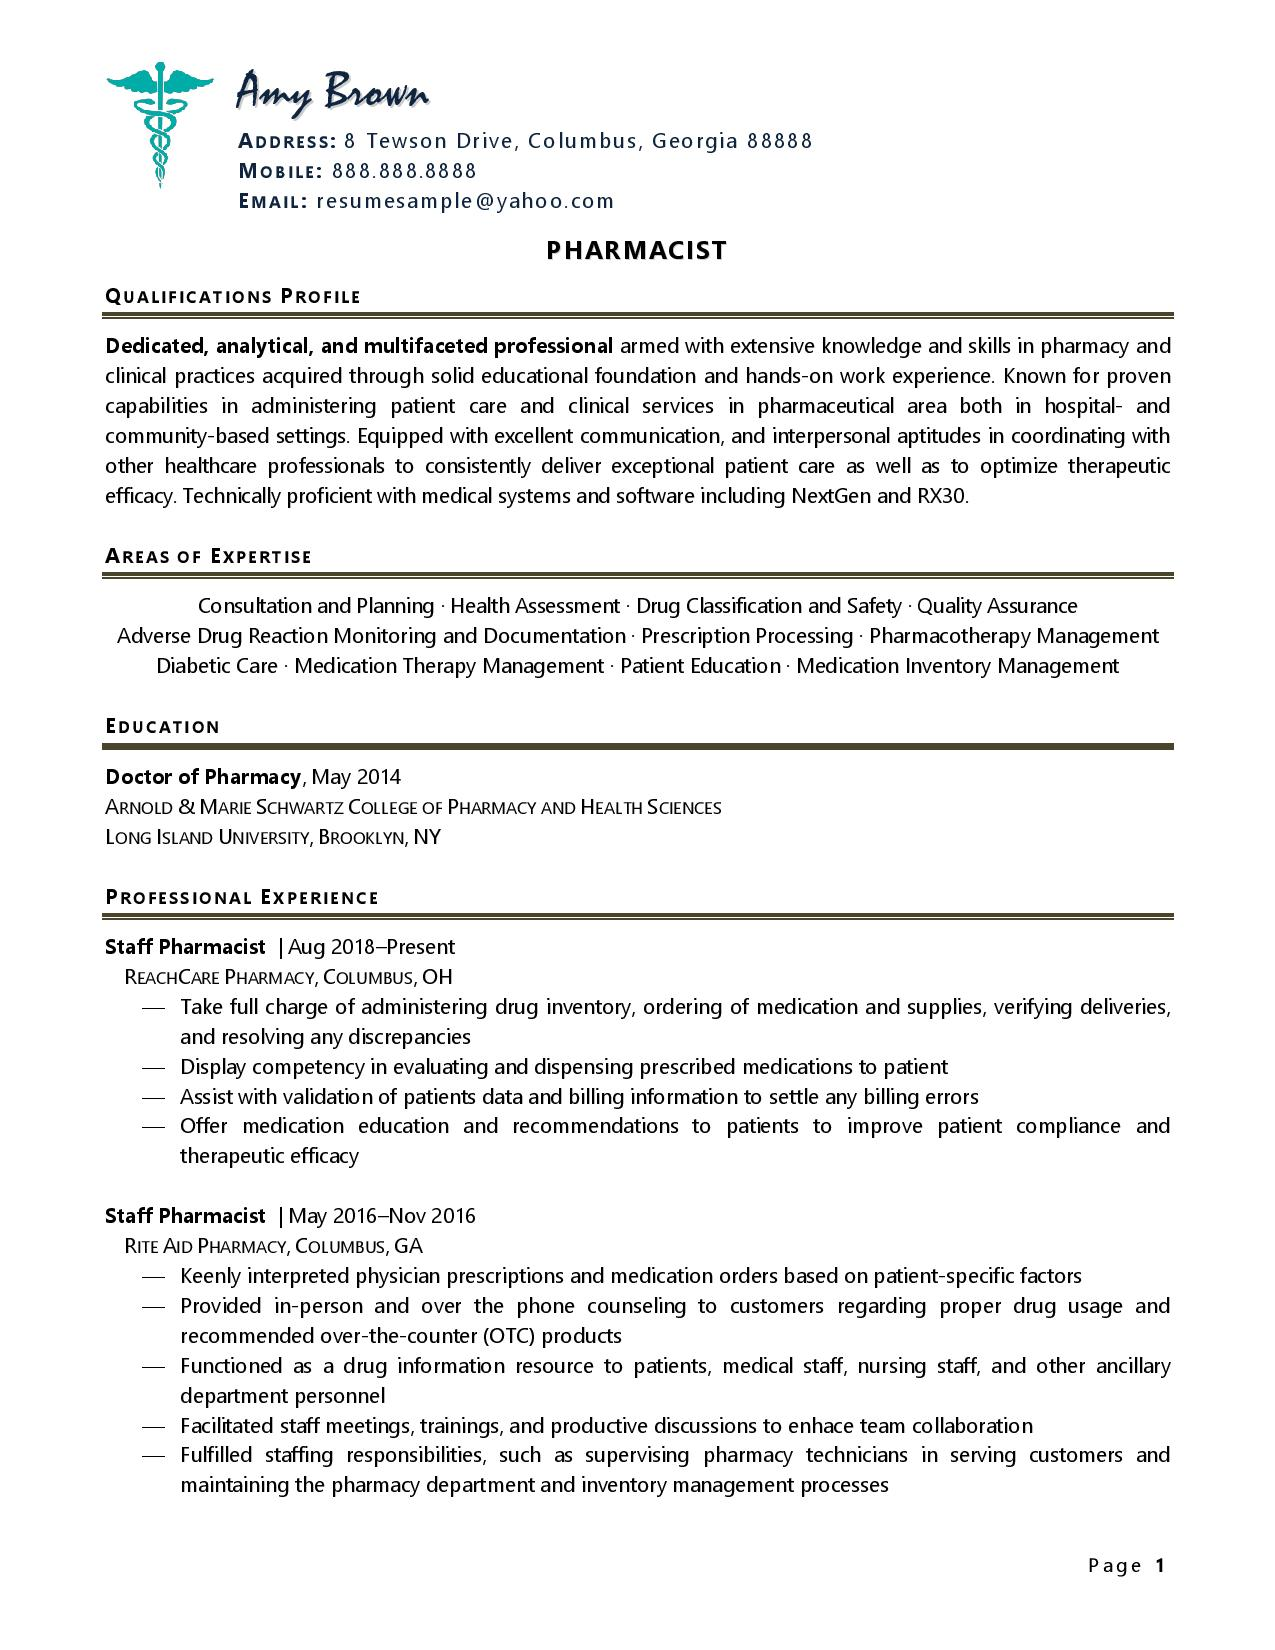 Page one of one of pharmacist resume examples